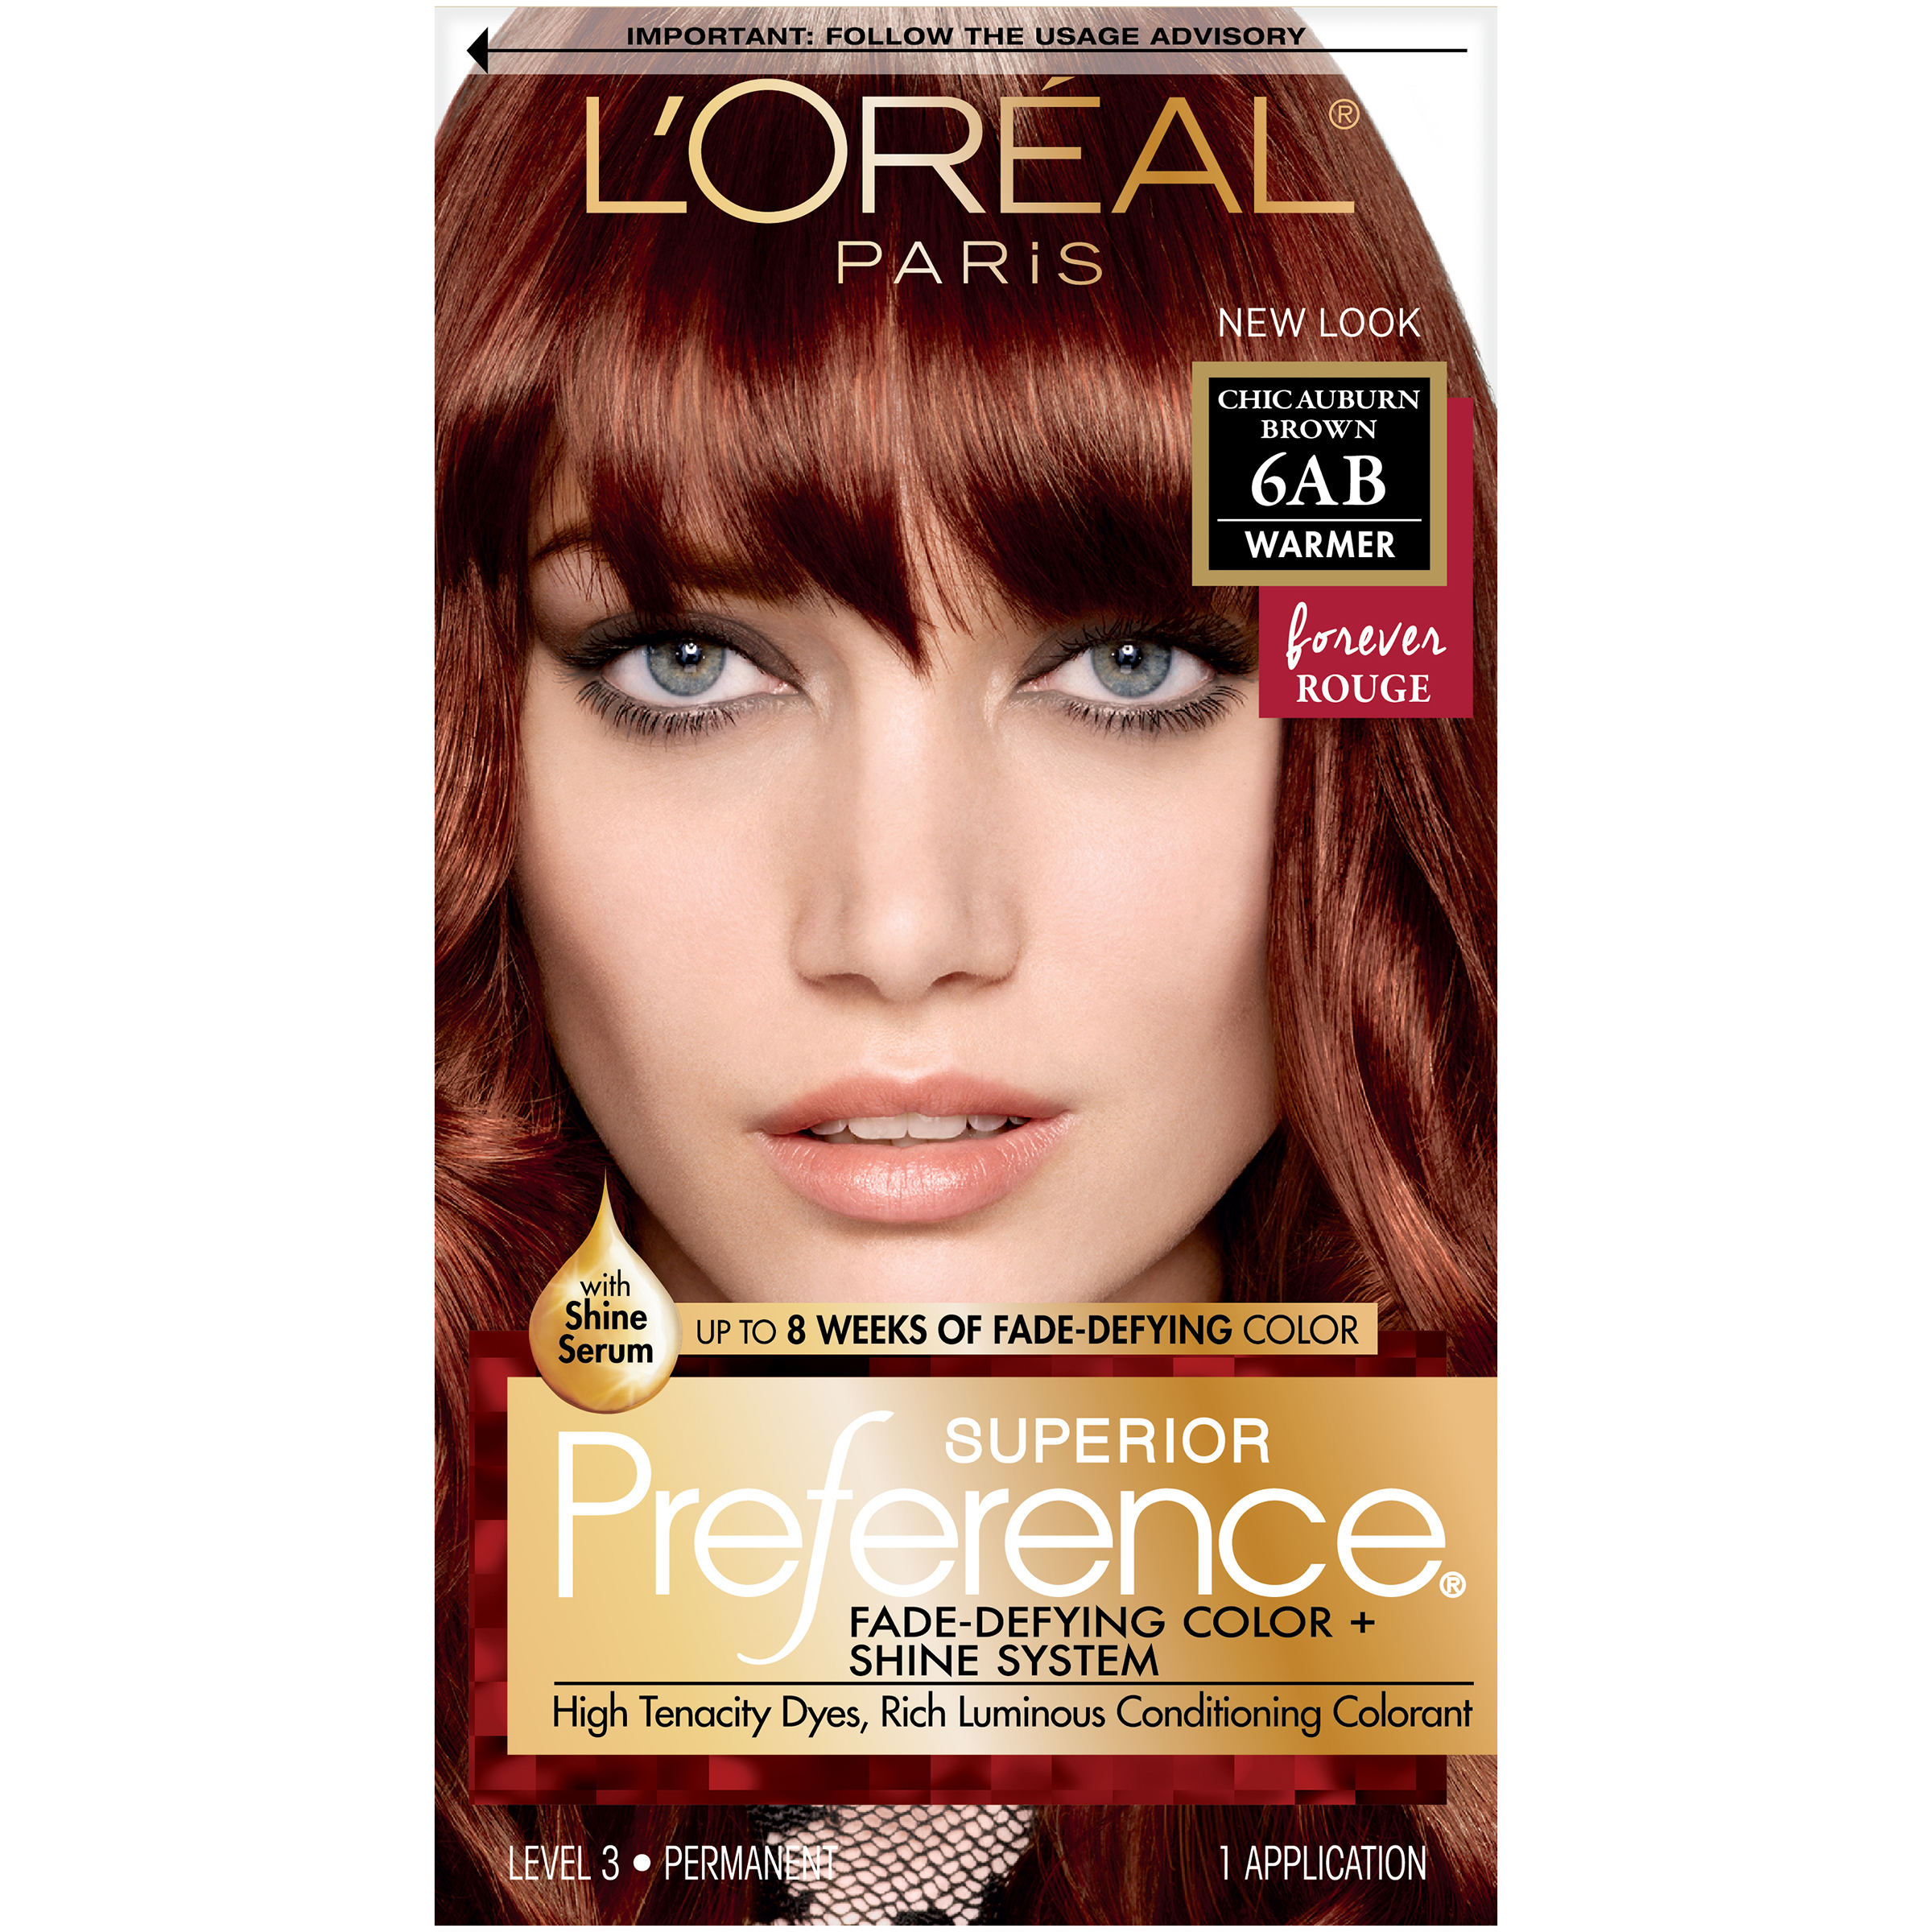 Loral Paris Superior Preference Permanent Hair Color 6ab Chic